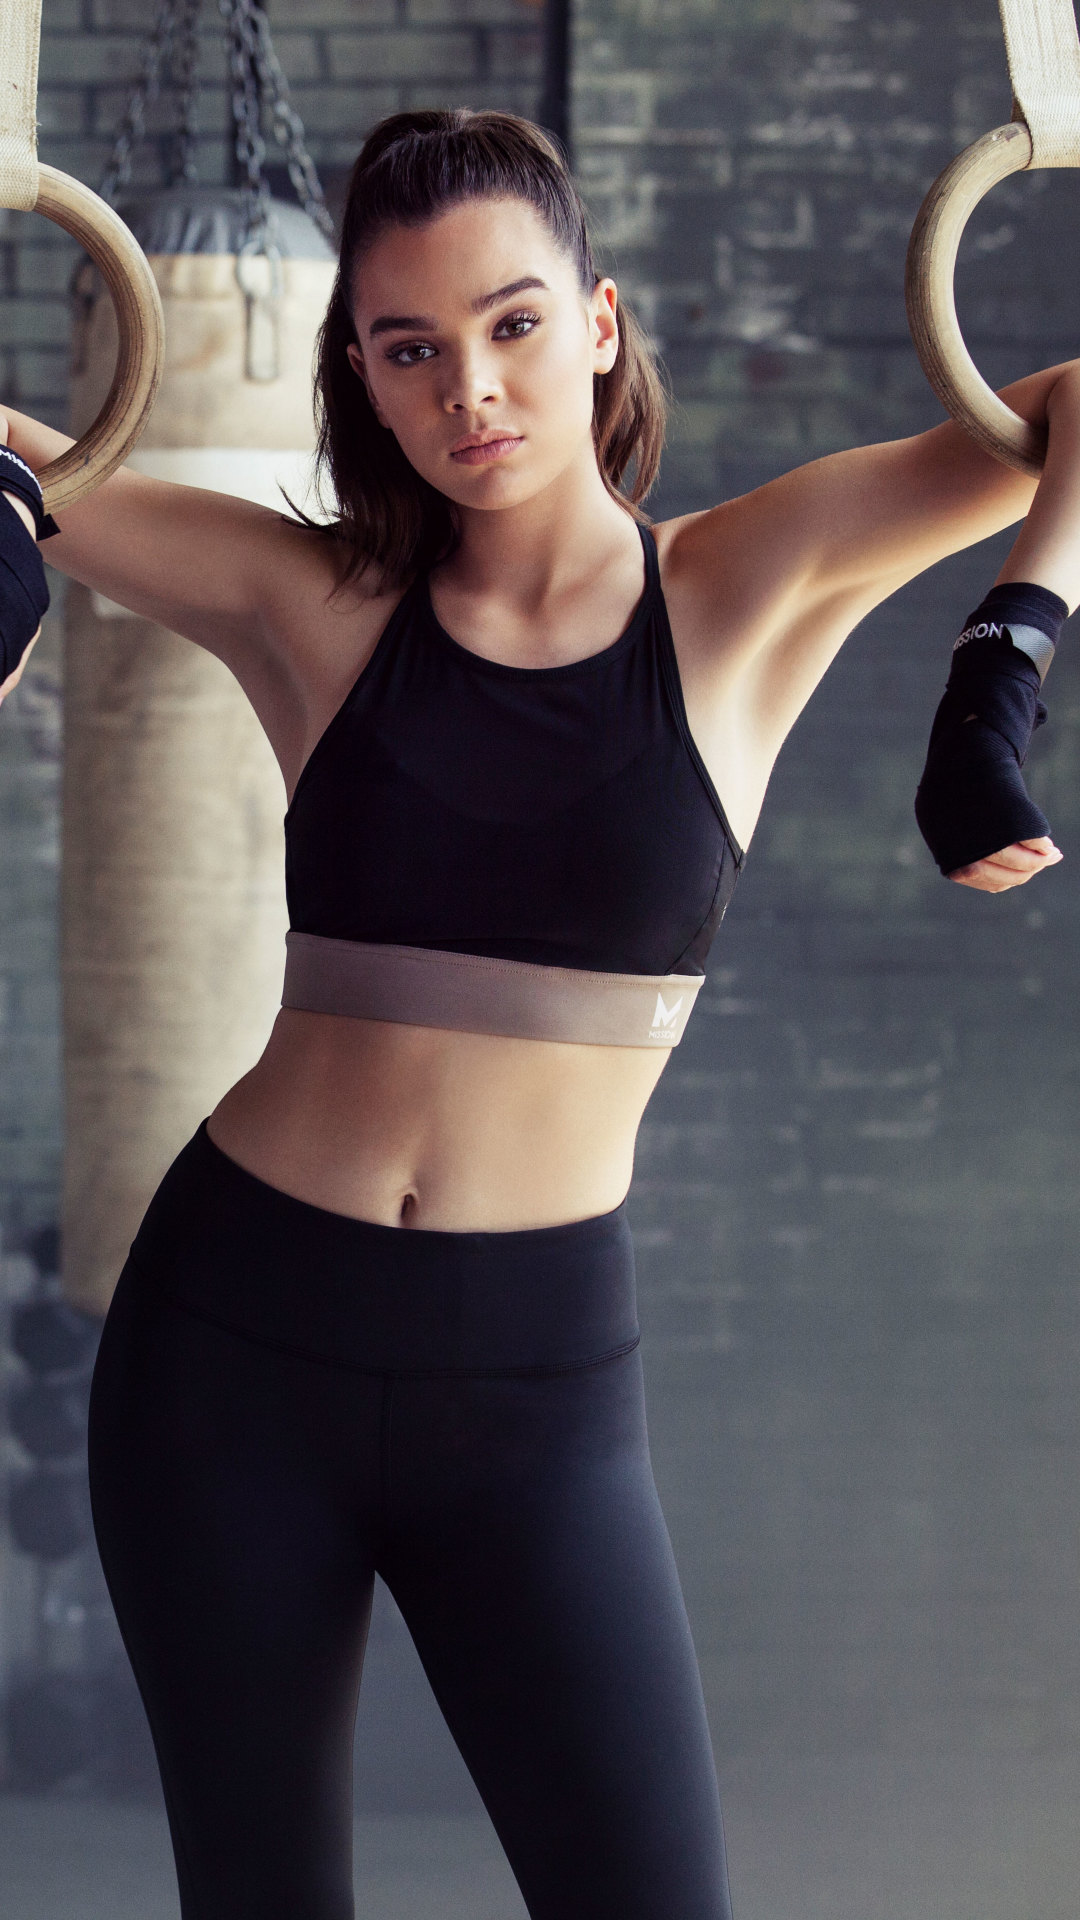 1080x1920 Hailee Steinfeld Hot Work Out Photoshoot Iphone 7